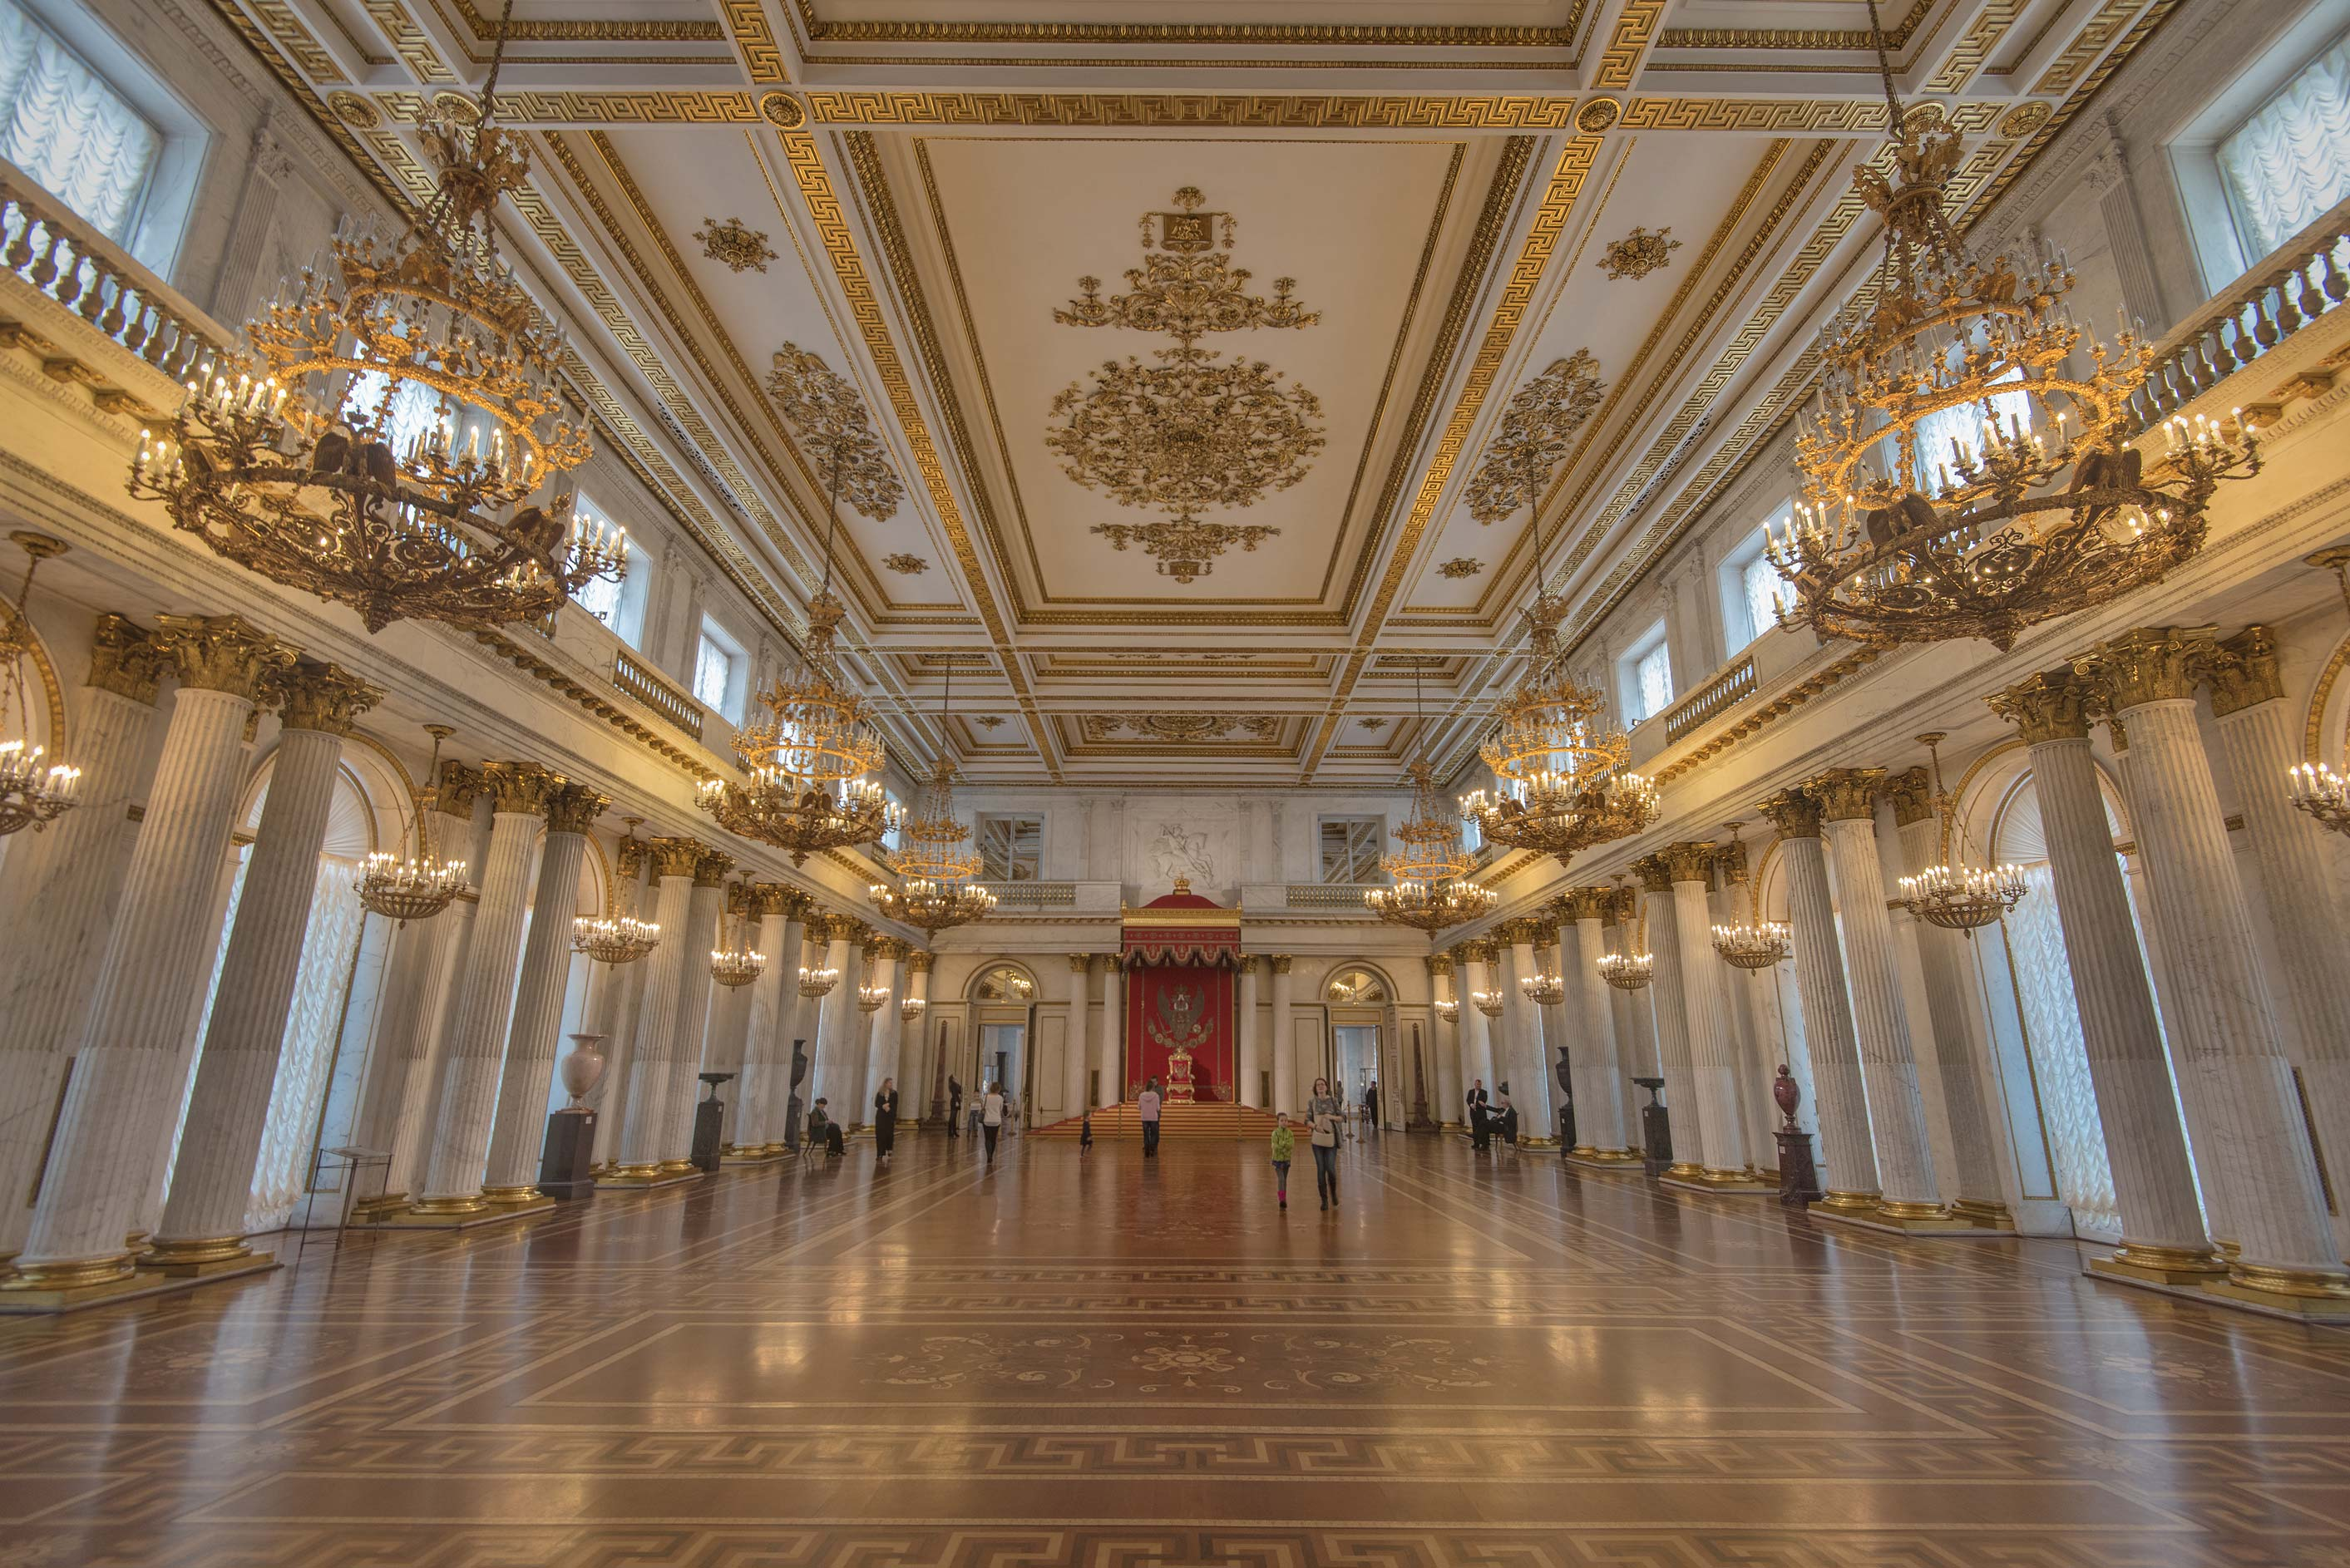 Throne hall in Hermitage Museum. St.Petersburg, Russia